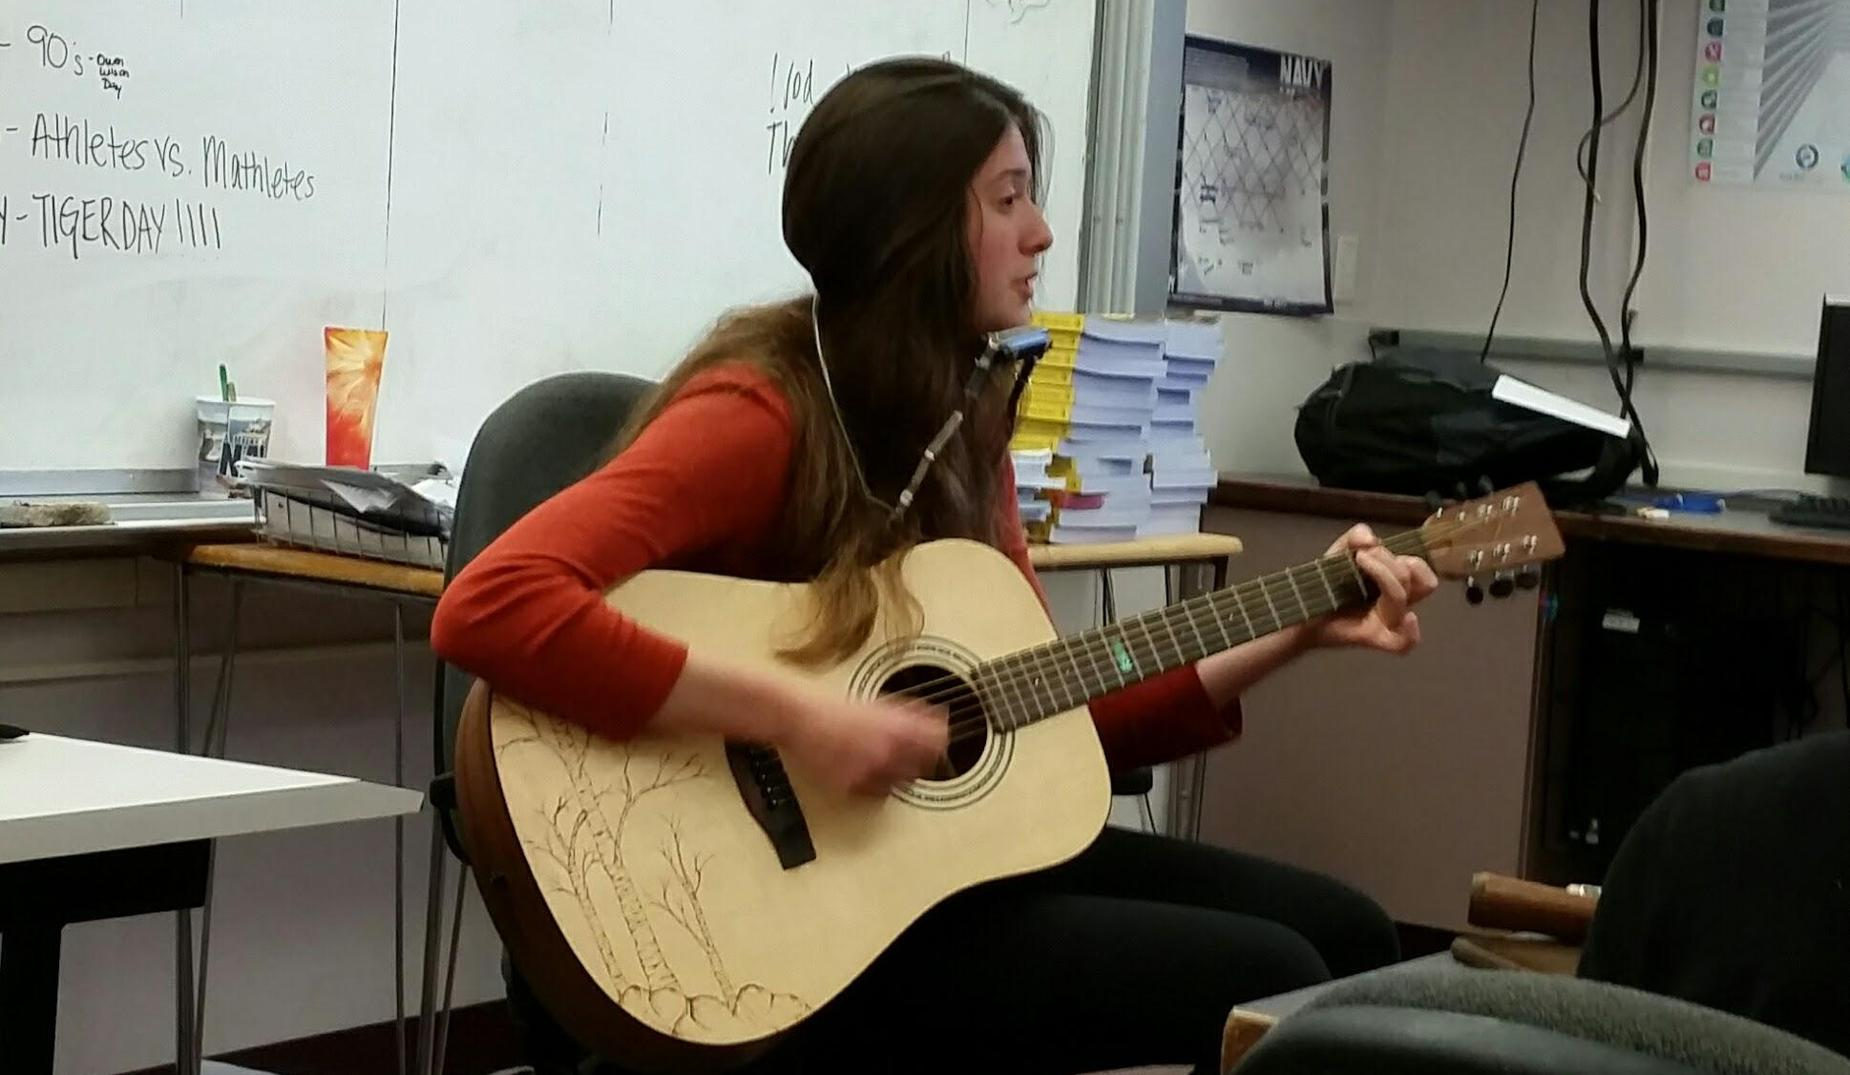 Anna built a guitar for her senior project